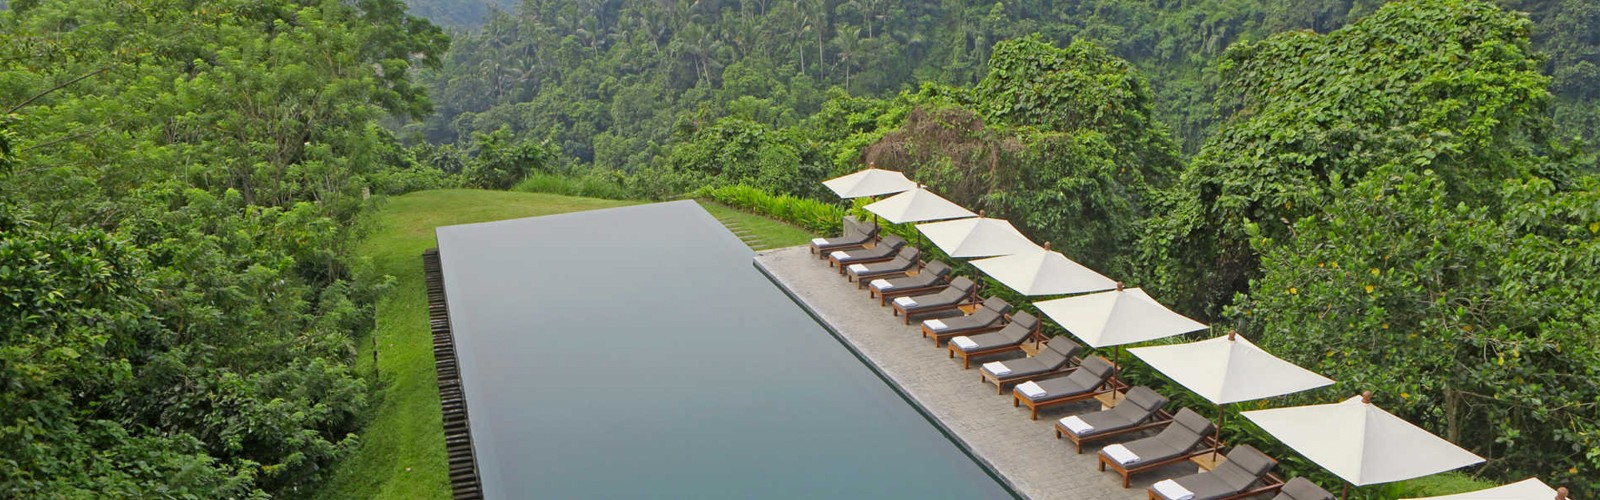 header - holiday review in bali - luxury bali holiday packages